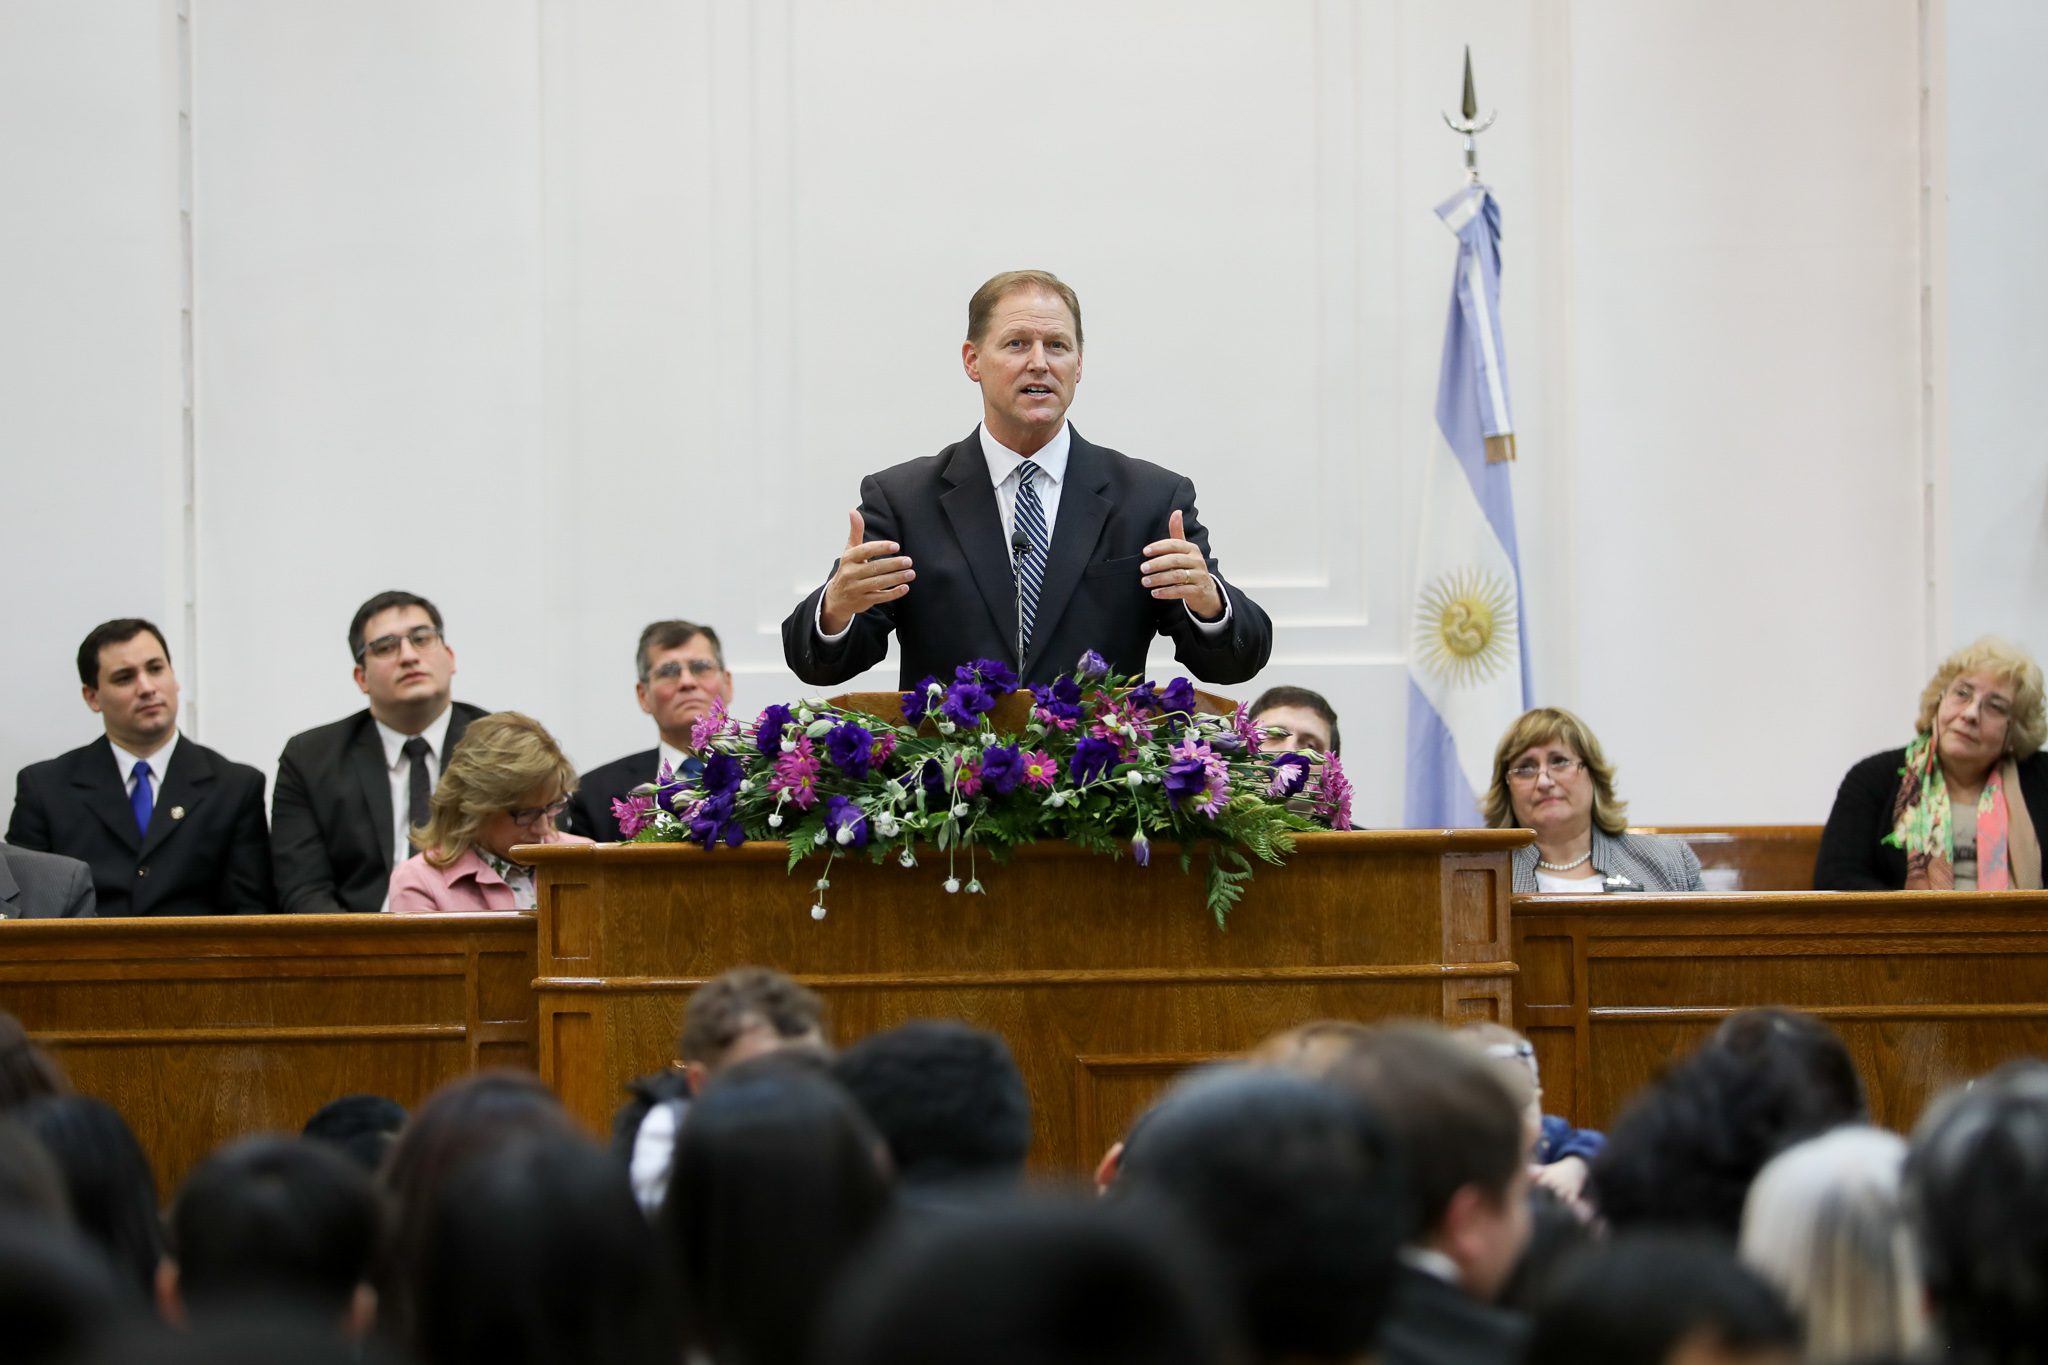 Elder Mark A. Bragg speaks during the meeting where the southernmost stake in the world, the Tierra del Fuego Argentina Stake, was created on June 2, 2019.